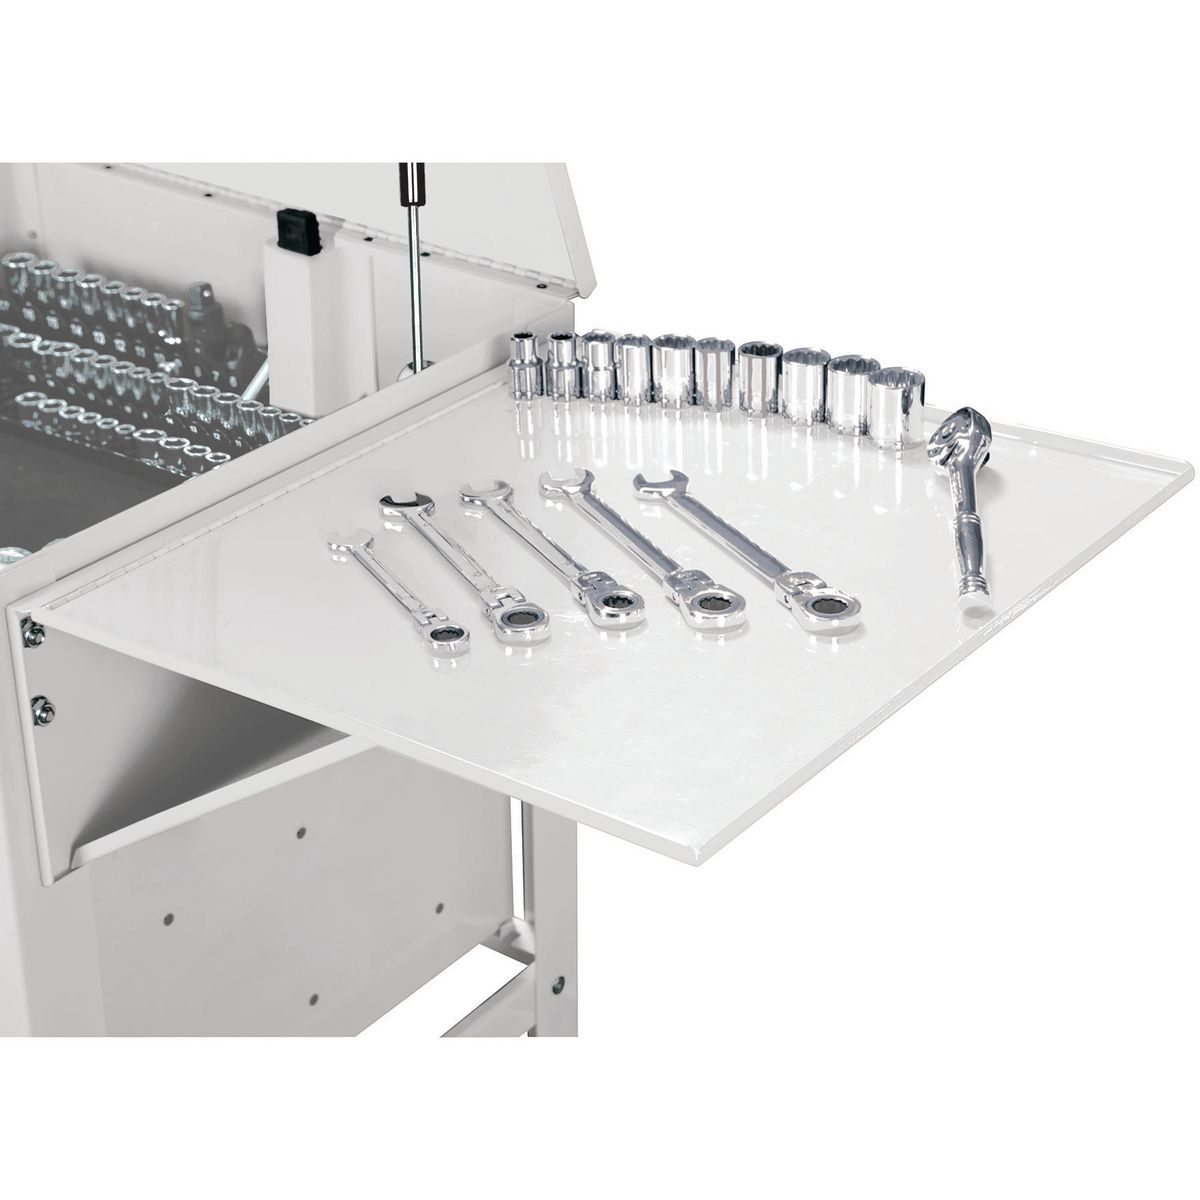 U.S. GENERAL Folding Side Tray for White Tool Cart - Item 56443